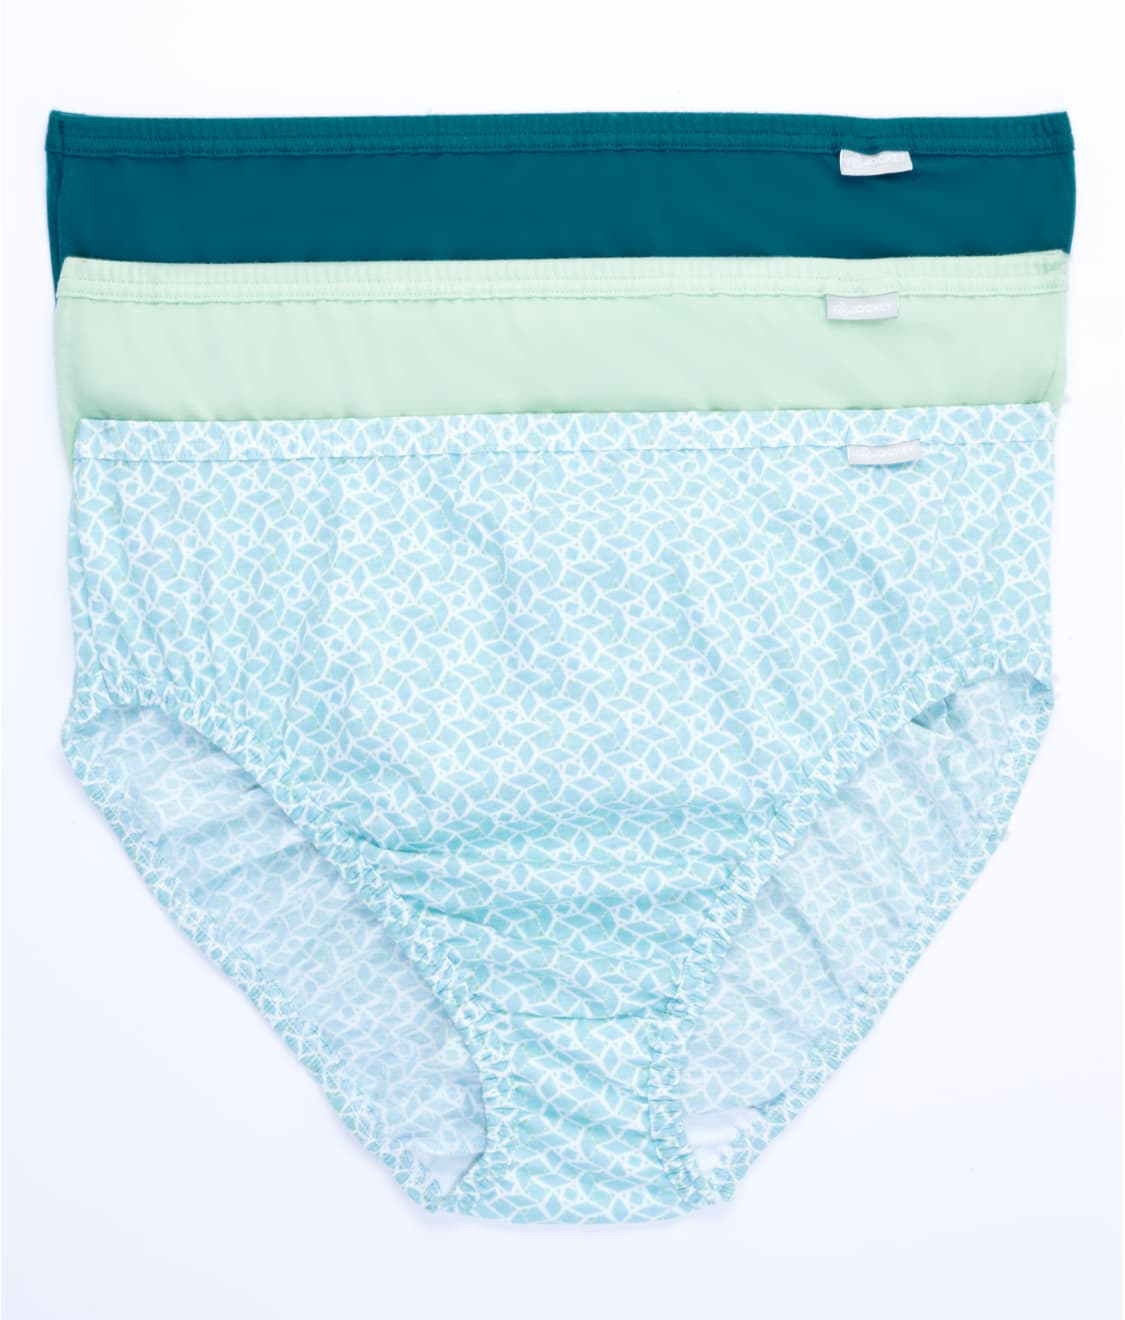 5d868f57d91 See Plus Size Elance French Cut Brief 3-Pack in Soft Mint